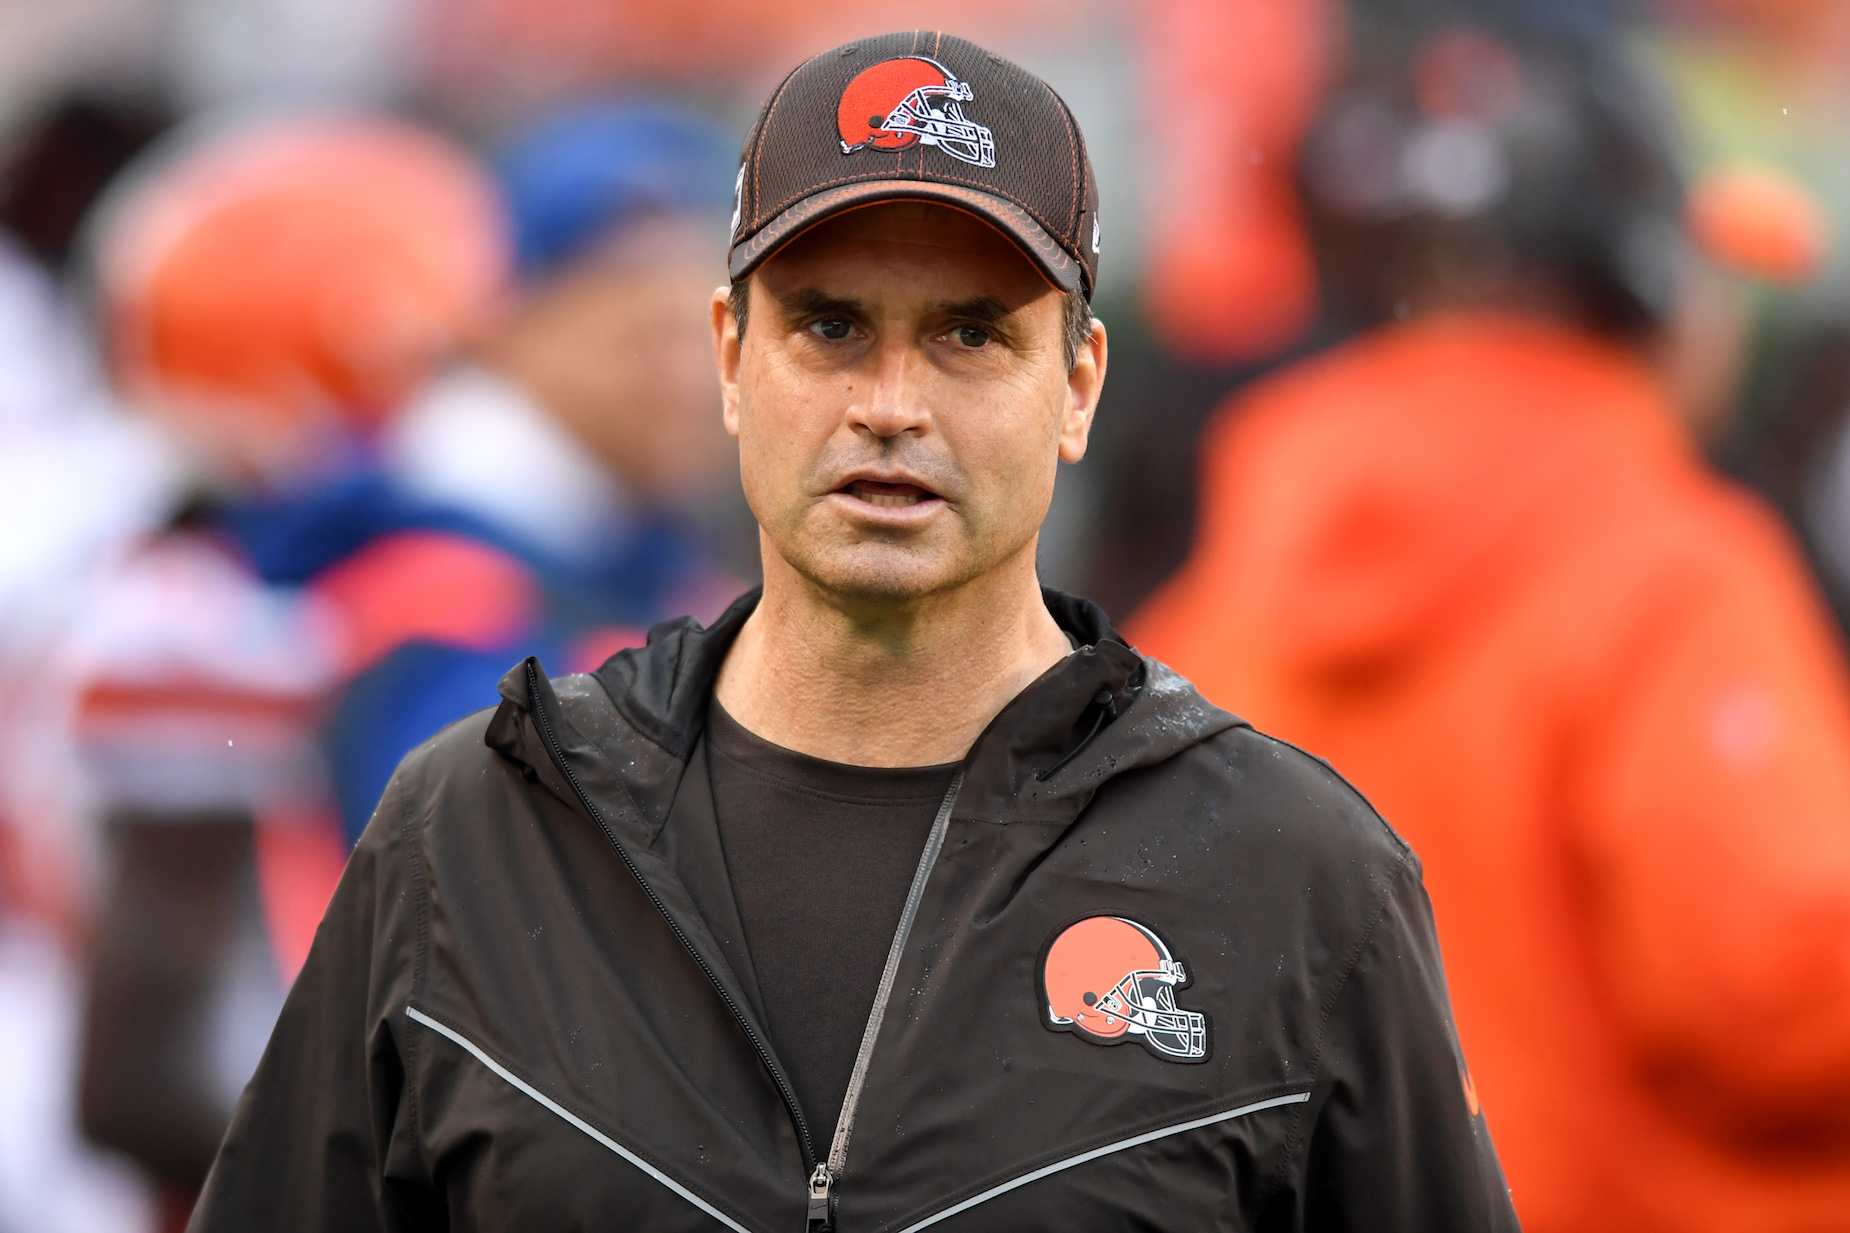 Cleveland Browns acting head coach Mike Priefer made hateful, homophobic comments during his time with the Minnesota Vikings.